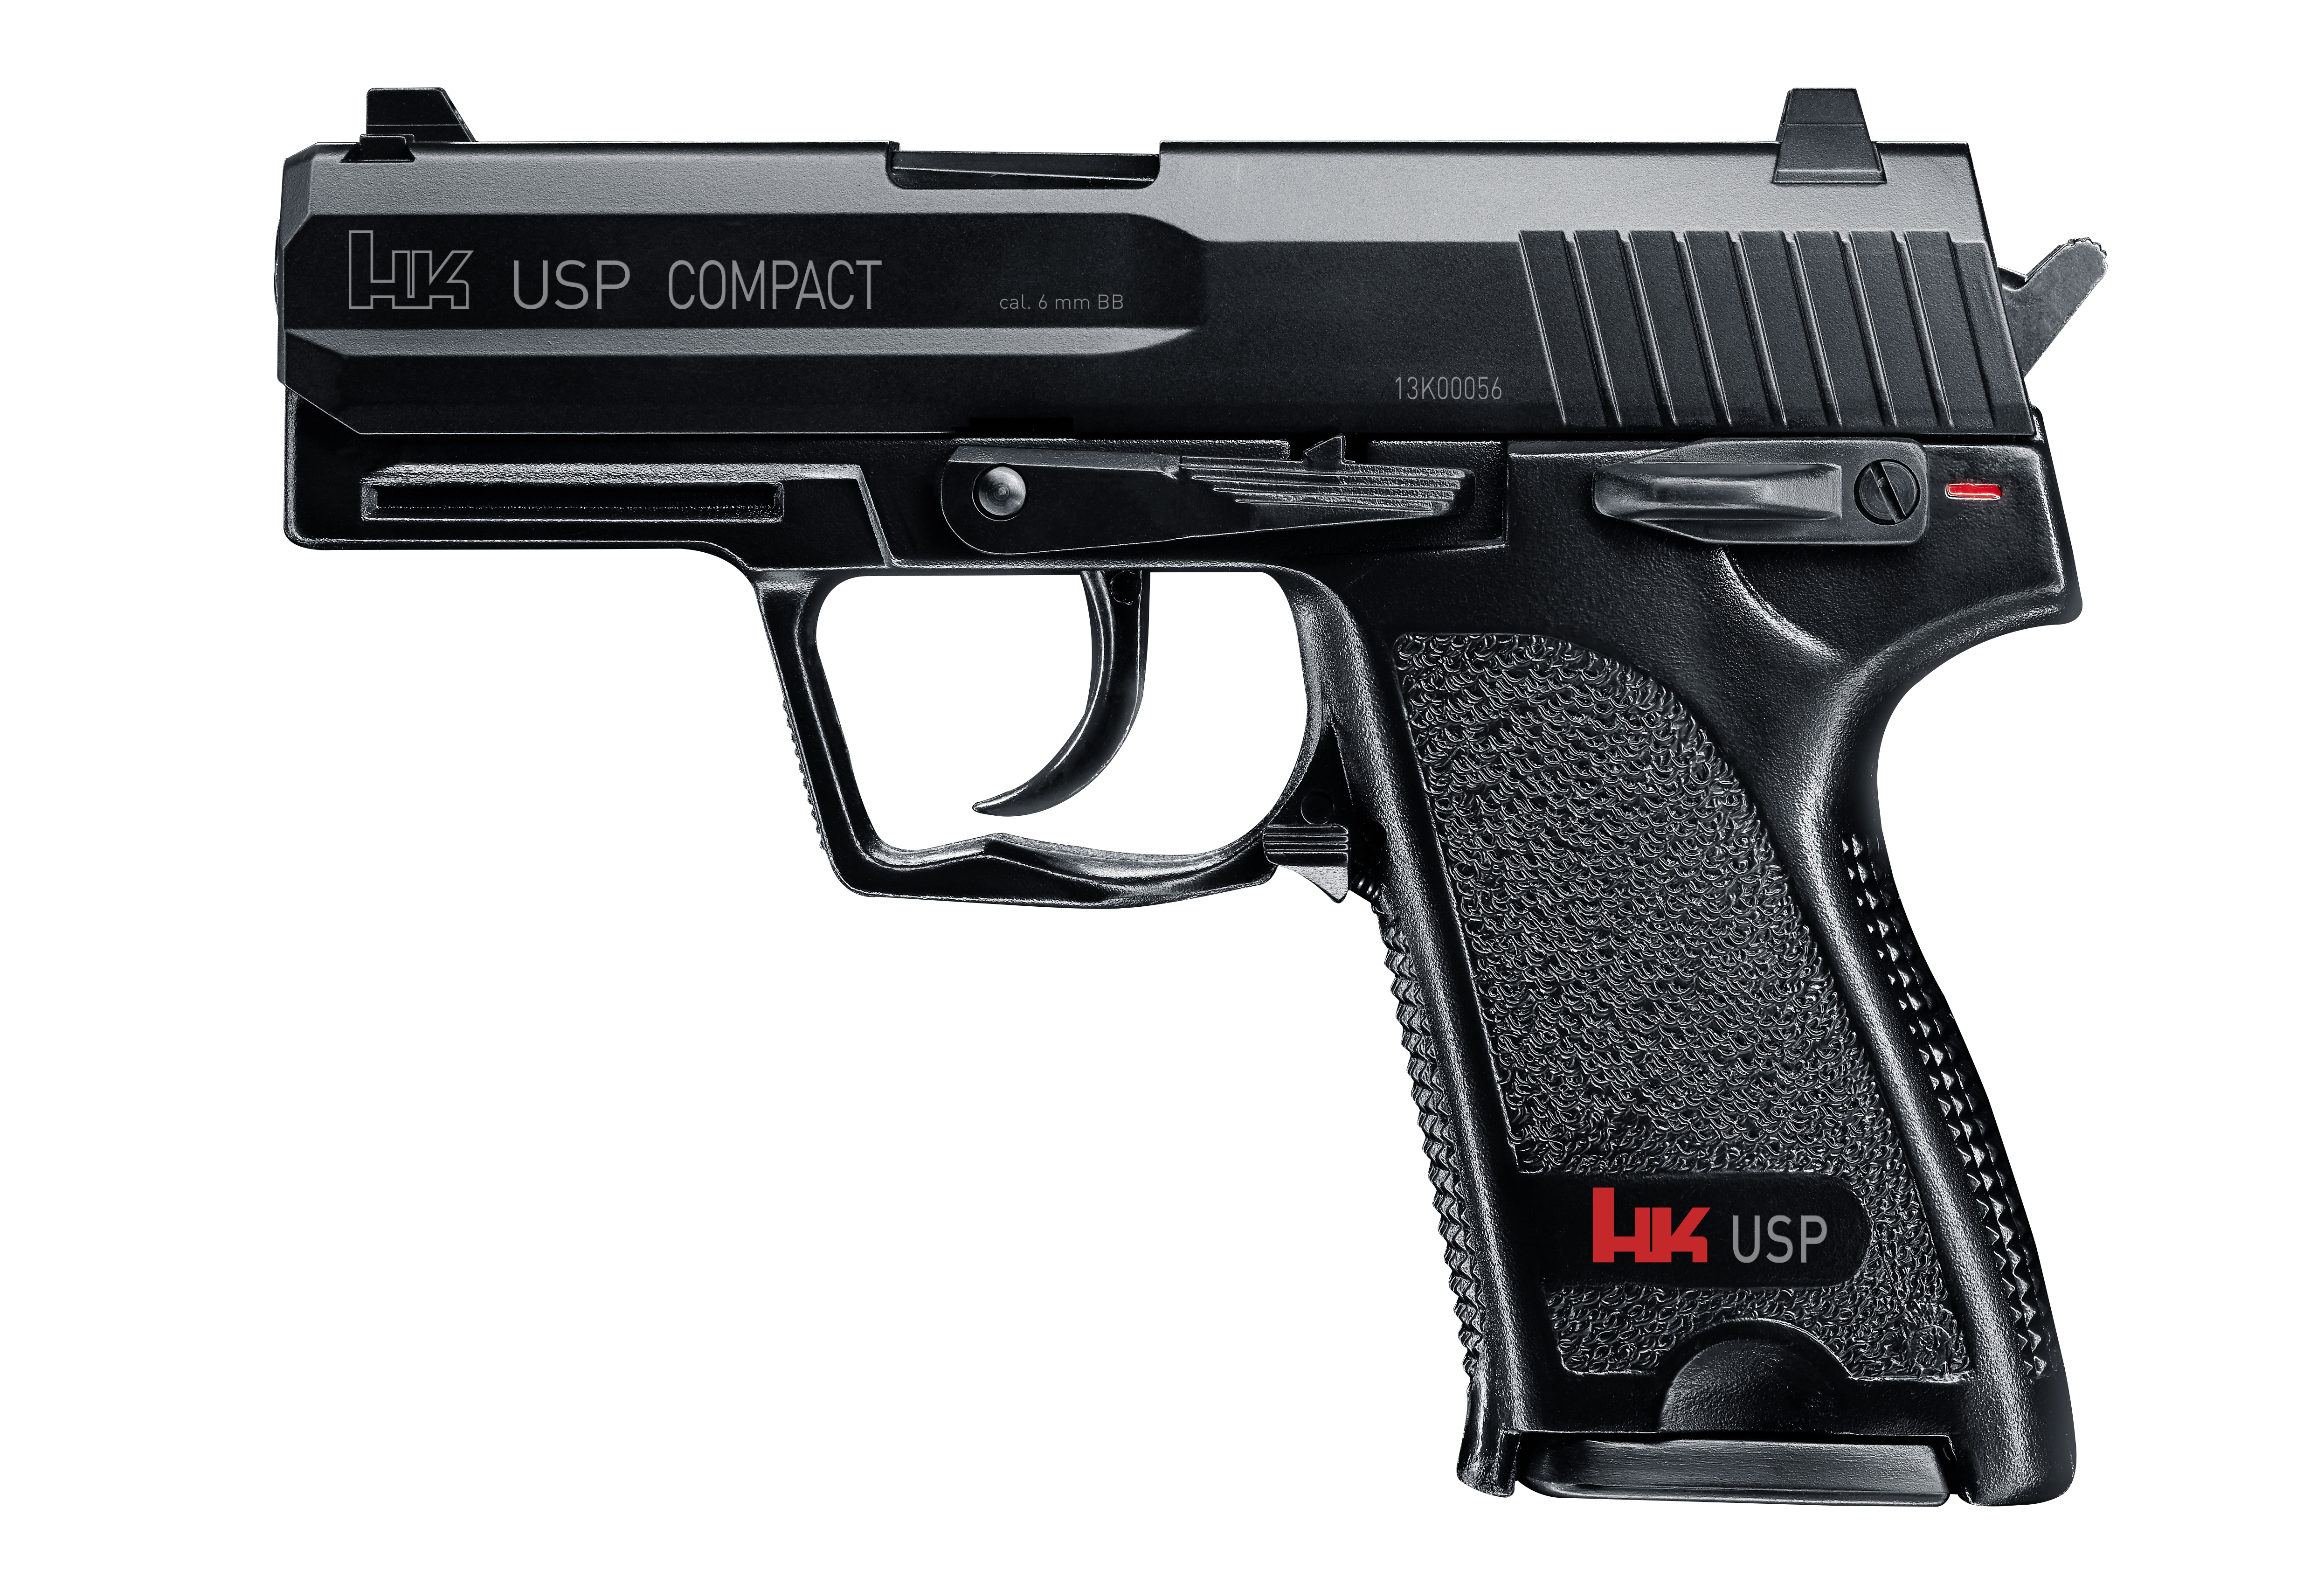 HECKLER & KOCH (Umarex) Airsoft Spring Operated USP Compact